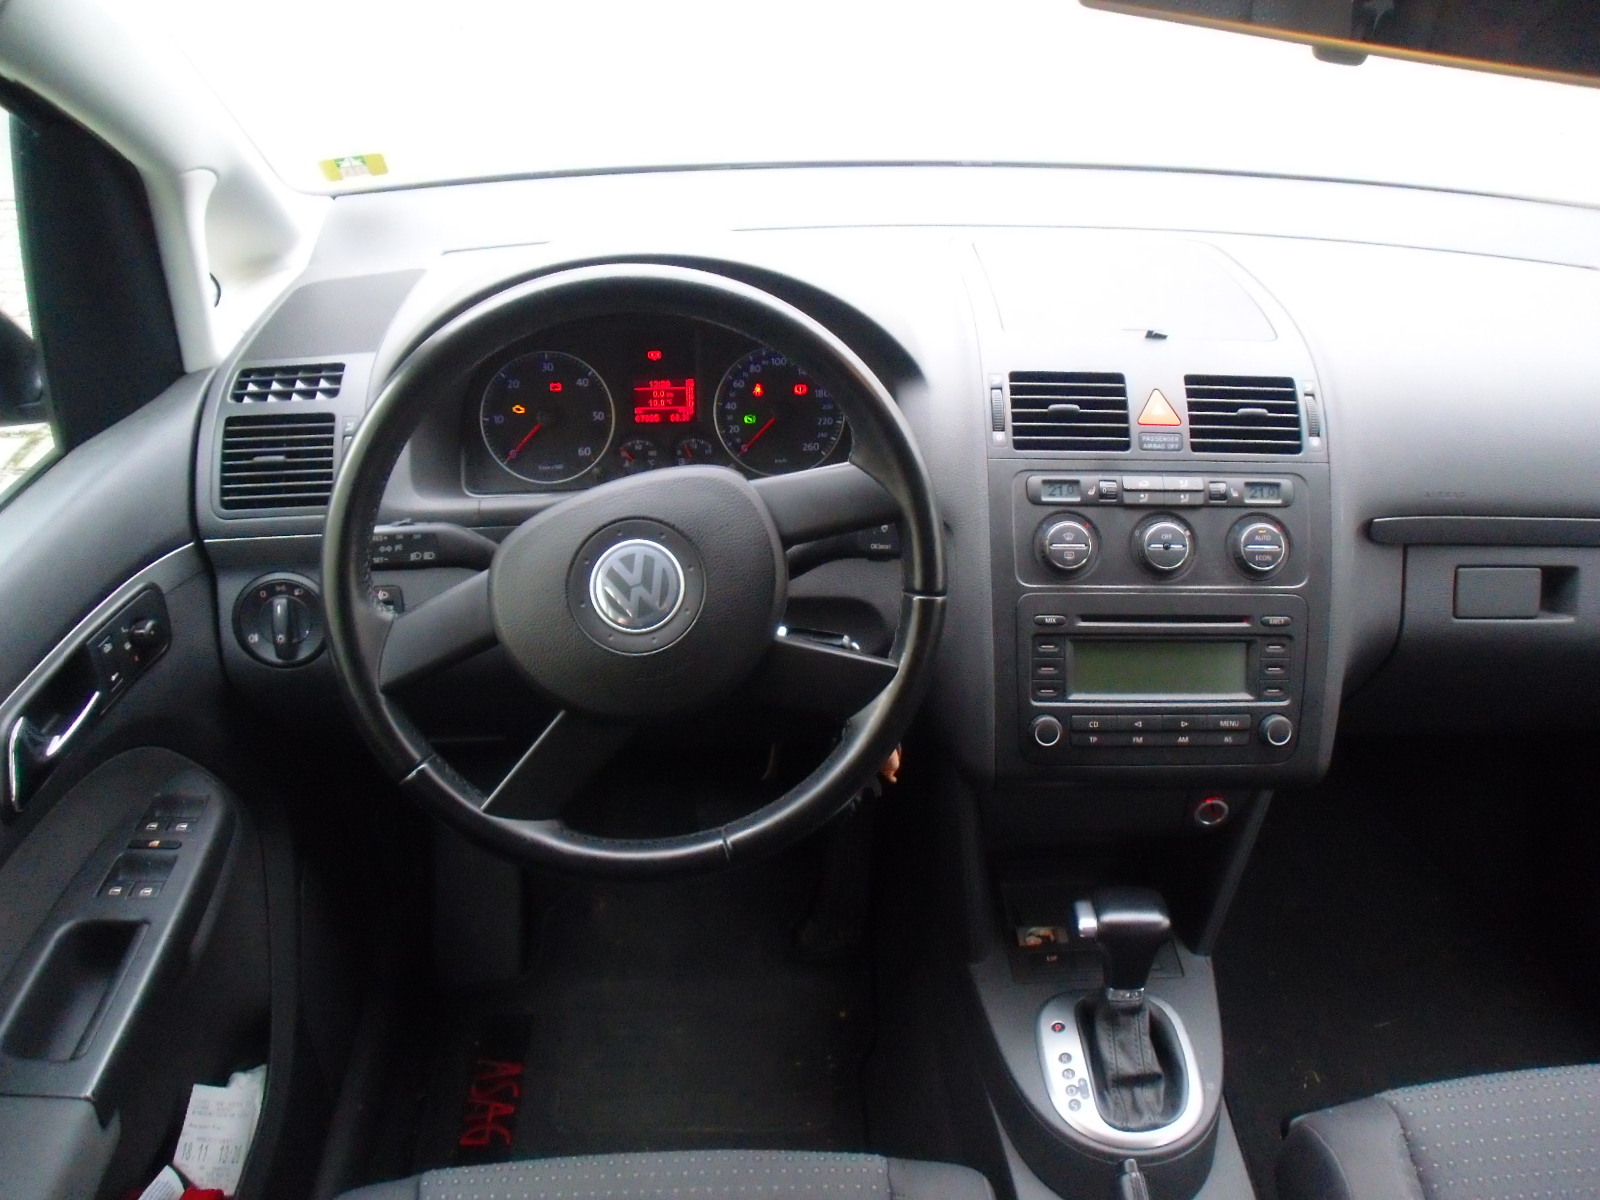 vw touran 1 9 tdi technical details history photos on. Black Bedroom Furniture Sets. Home Design Ideas